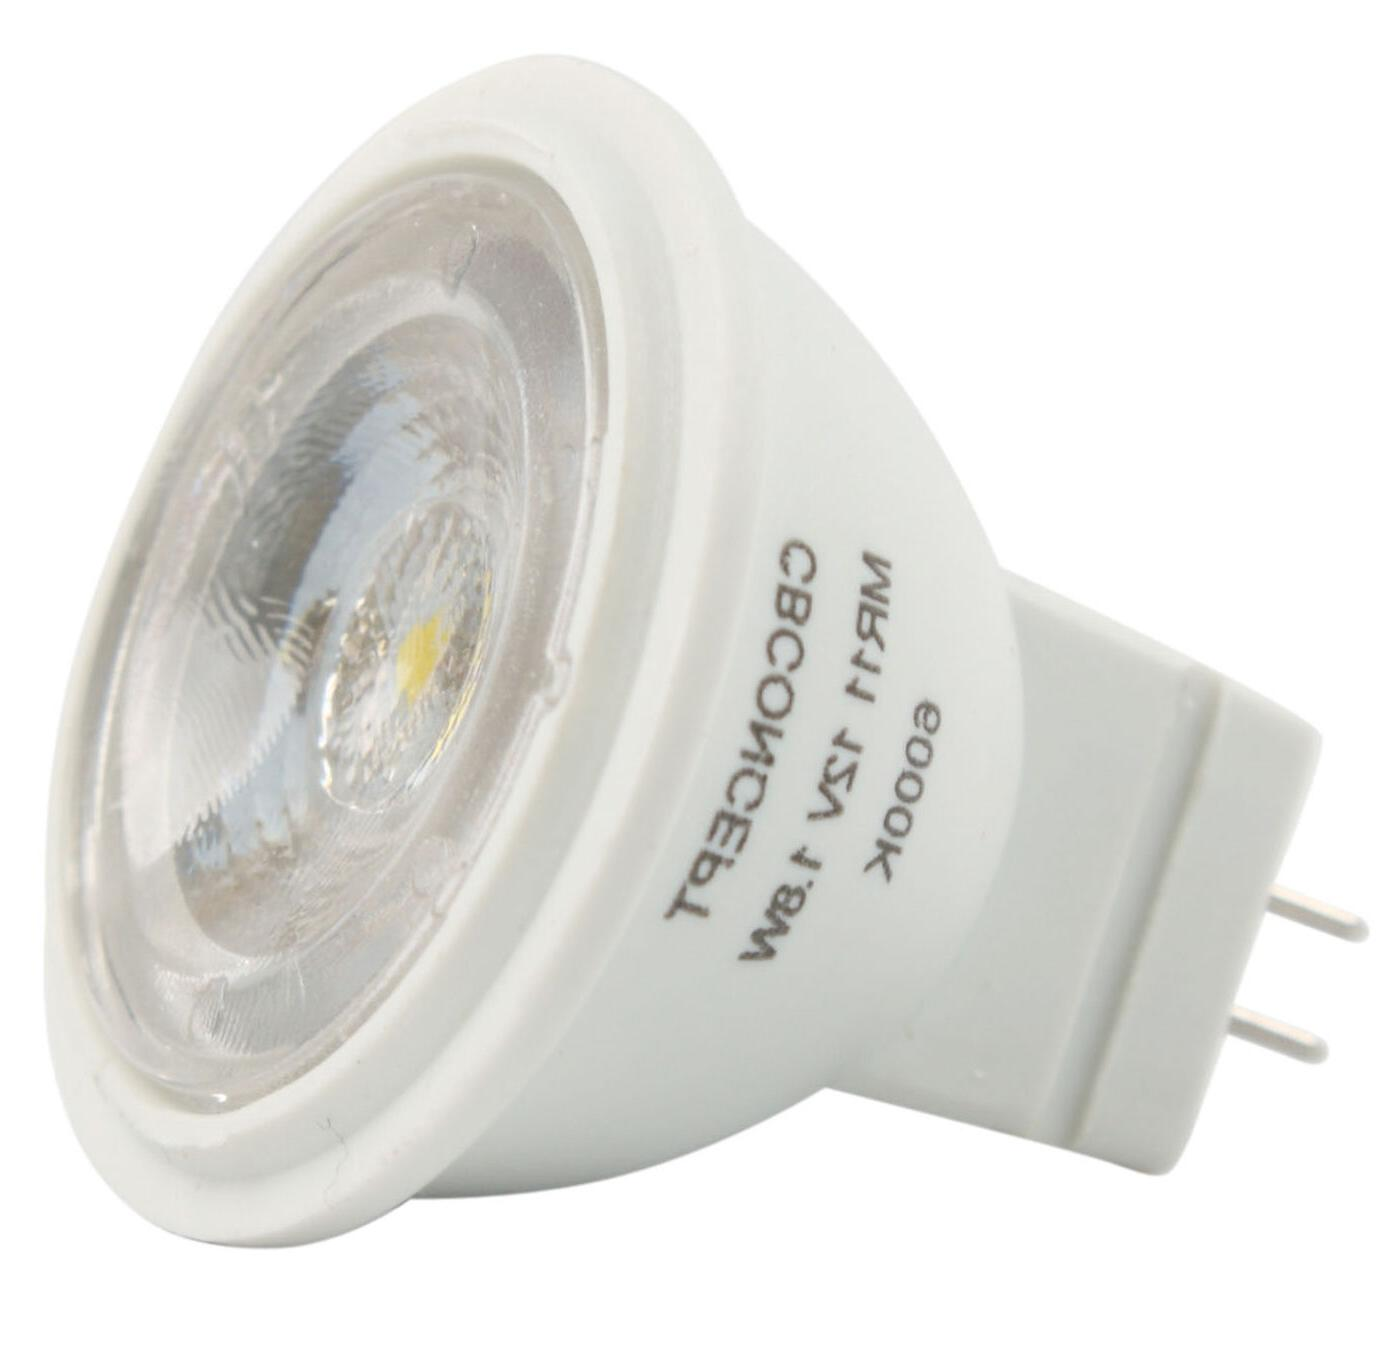 CBConcept Bulbs,2-Pack,1.8W,220LM,20W